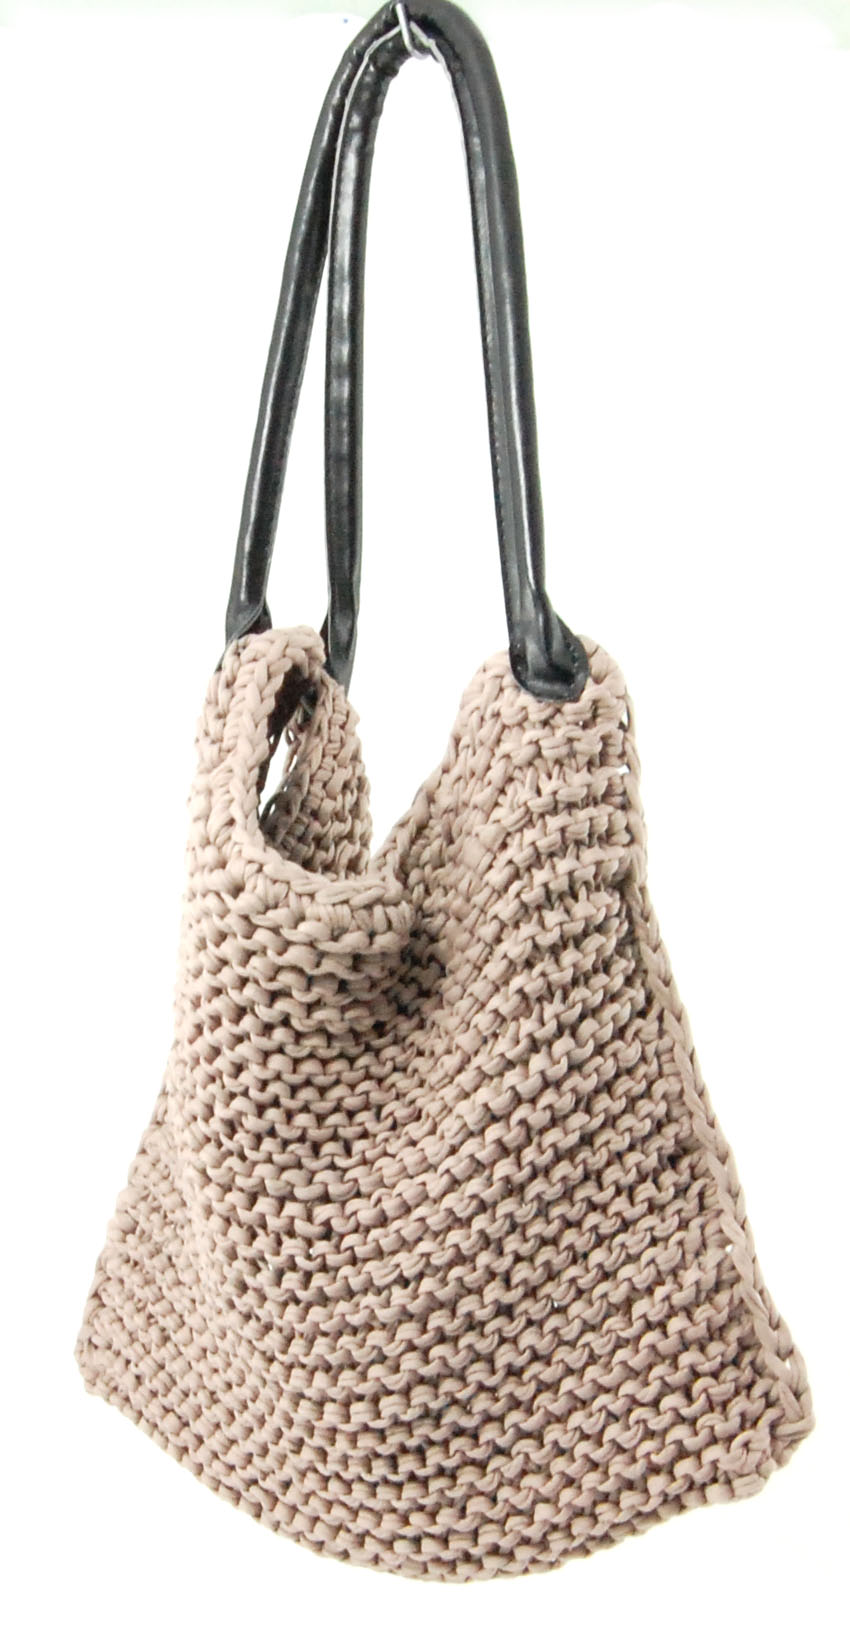 Knitting Bag Pattern : Knitted bag tutorial LVLY